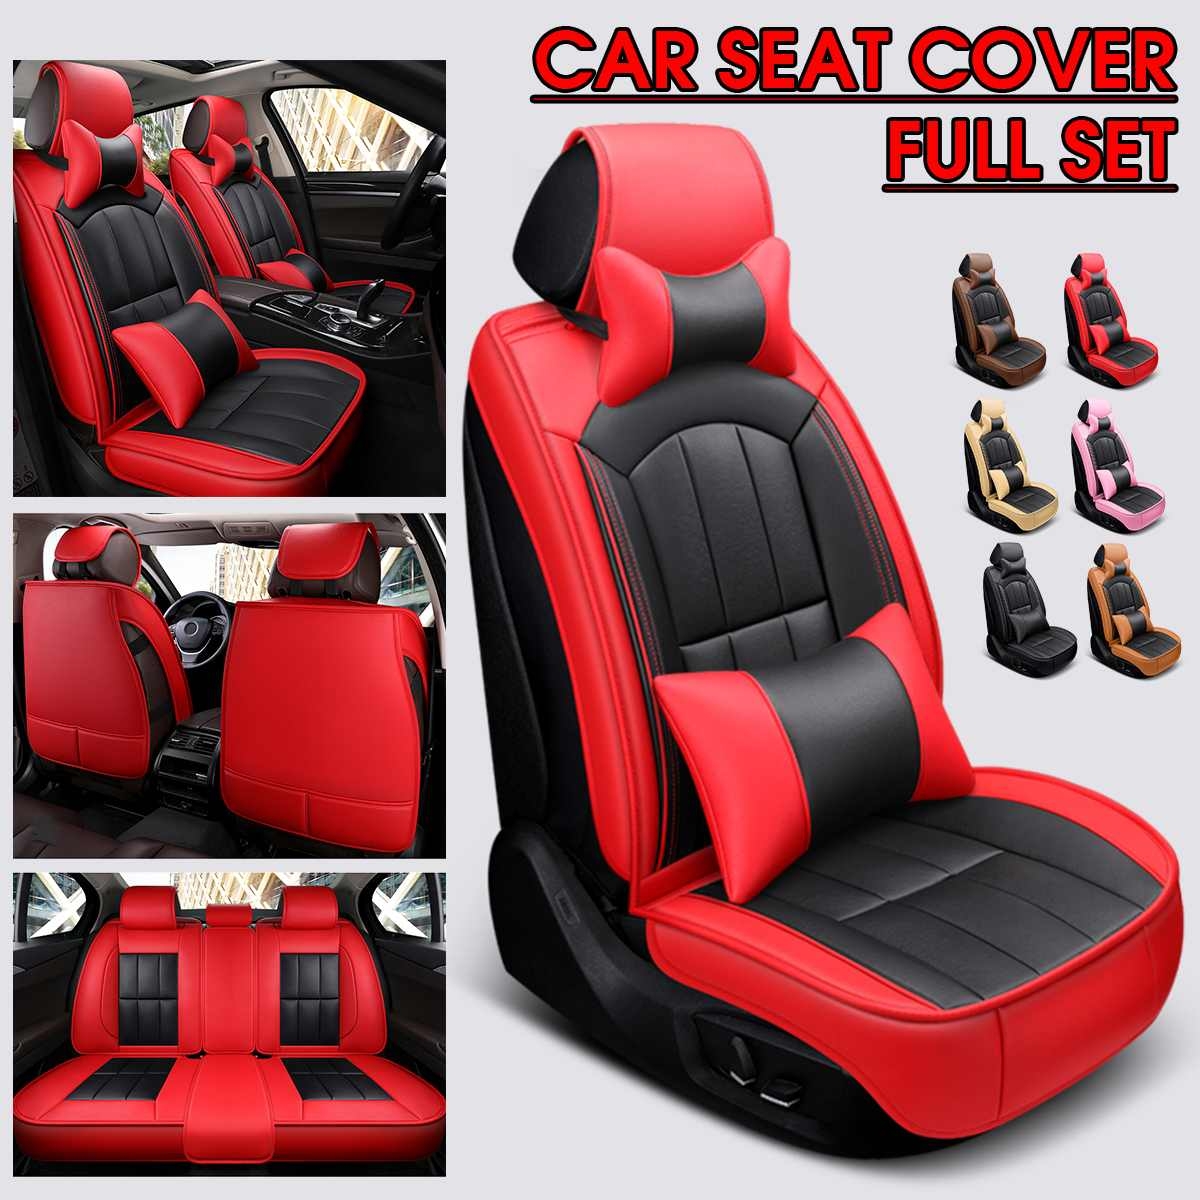 Full Set Leather Car Seat Cover Leather Backrest Seat Cushion Breathable 2pc Headrests Waist Pillows For All <font><b>5</b></font>-Seats Car Pad image